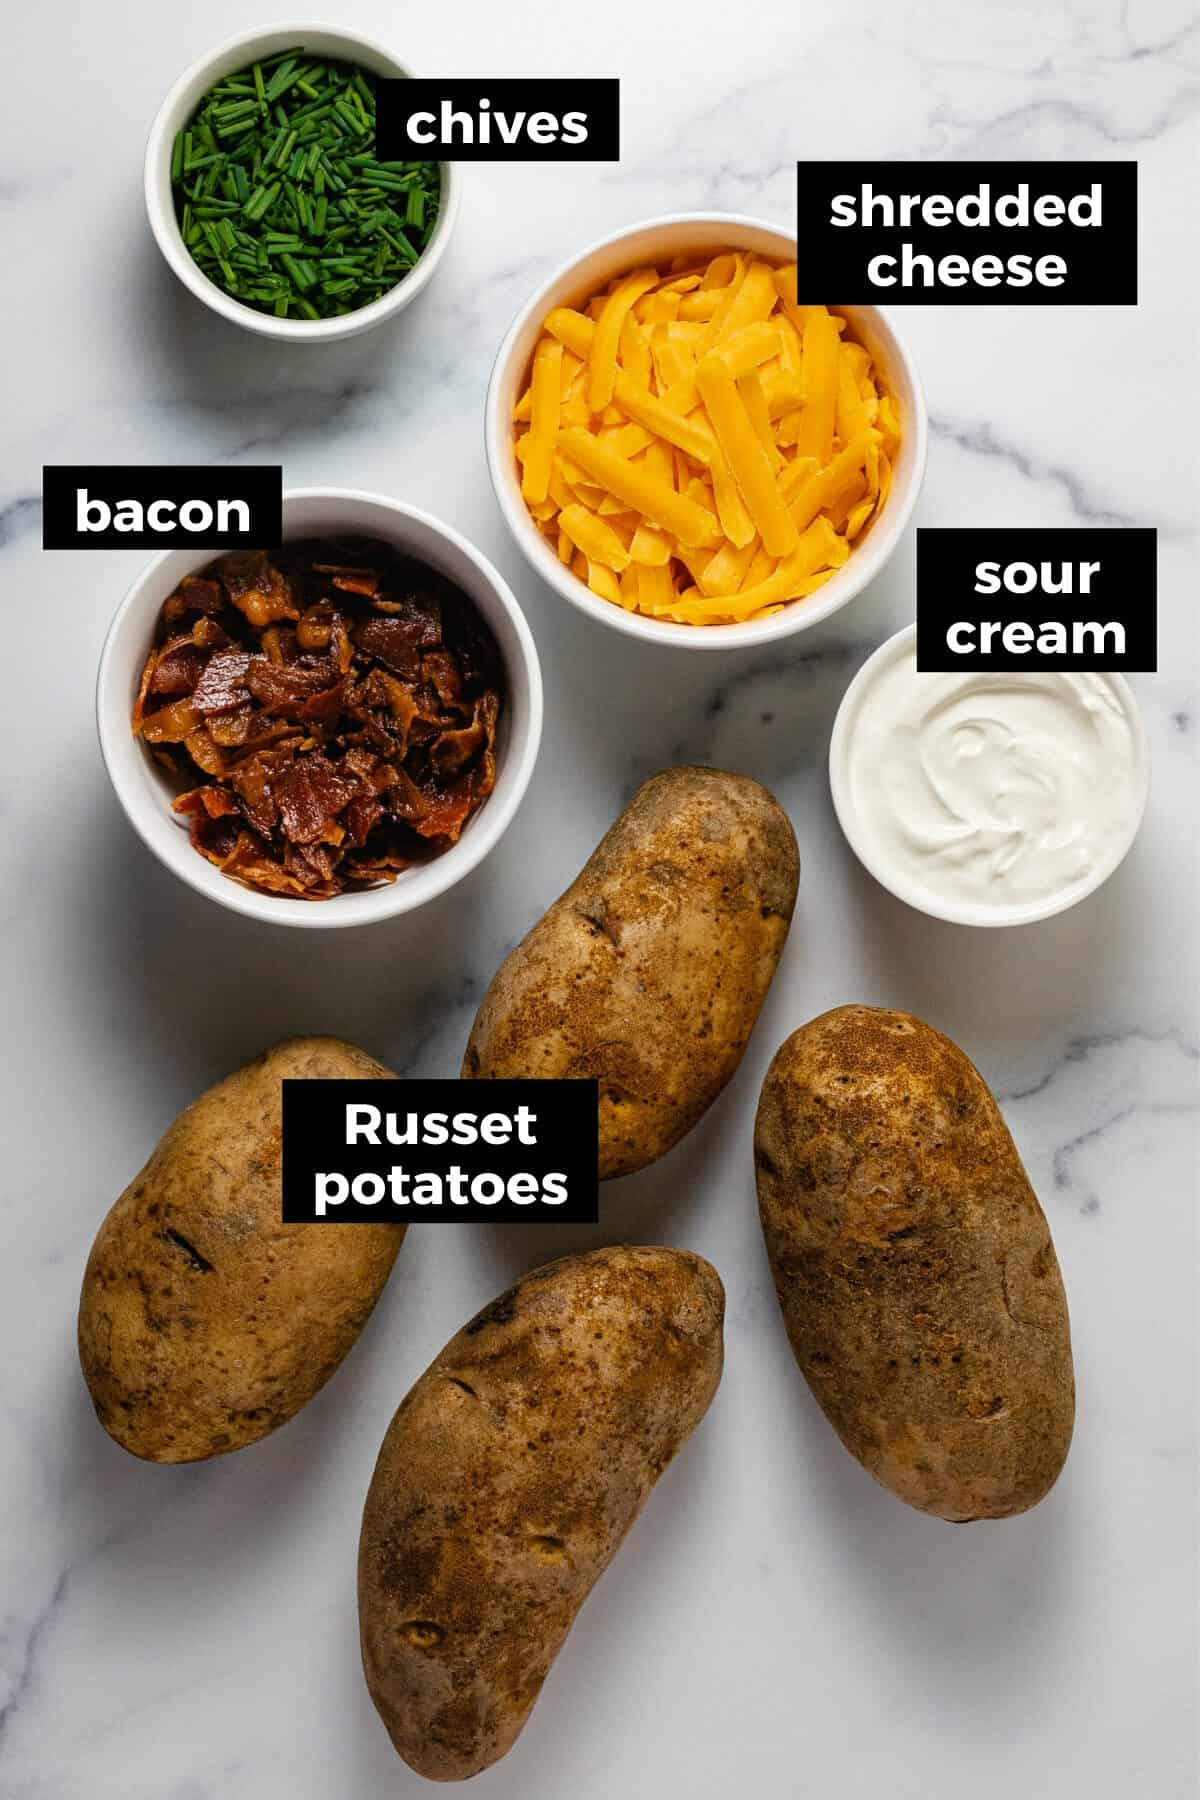 White marble counter top with ingredients to make instant pot baked potatoes